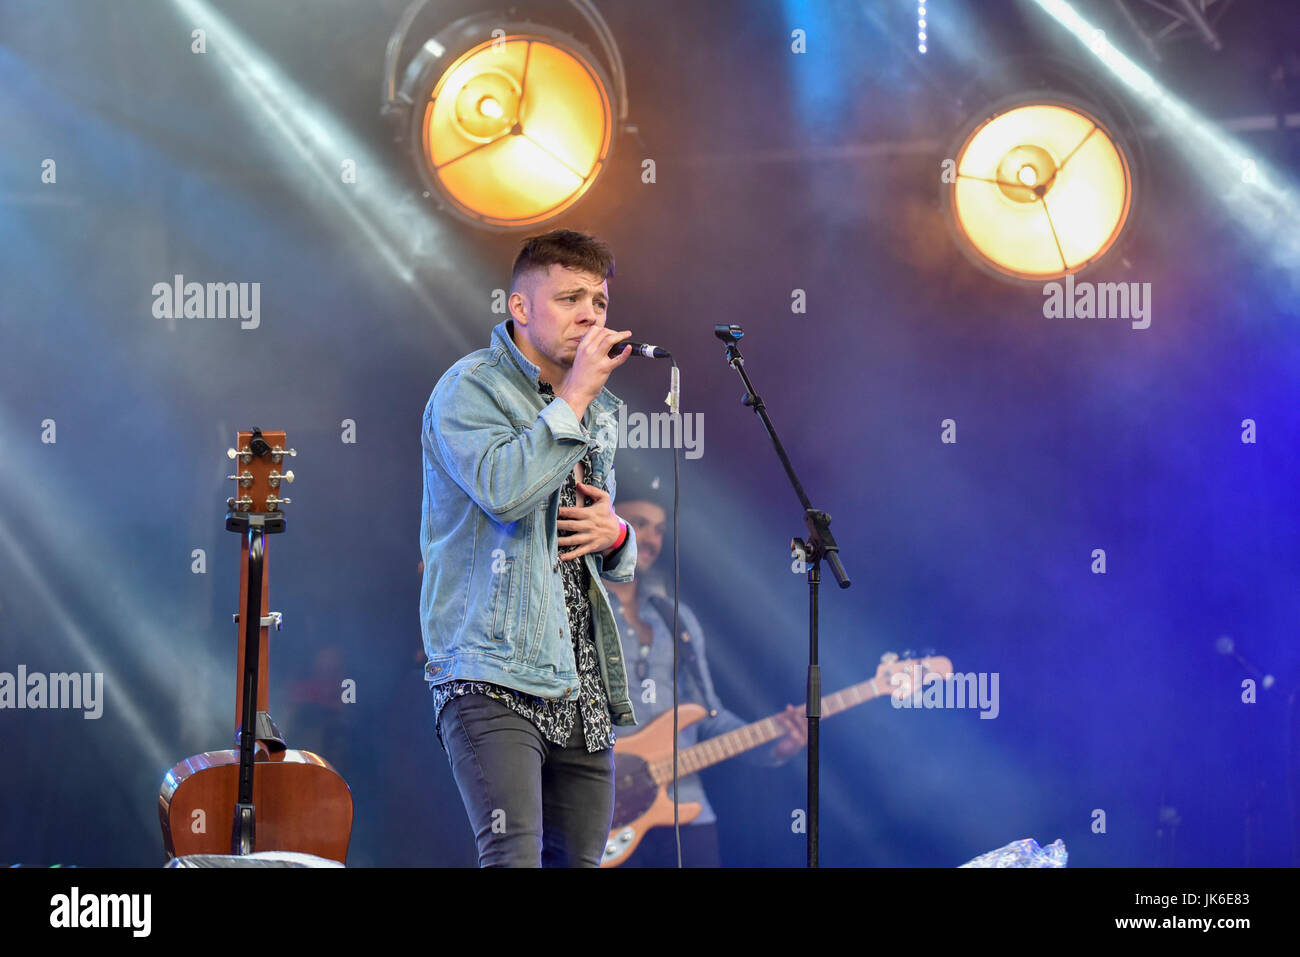 London, UK.  22 July 2017.  Kevin McGuire performs on stage.  'Nashville Meets London', a country music - Stock Image